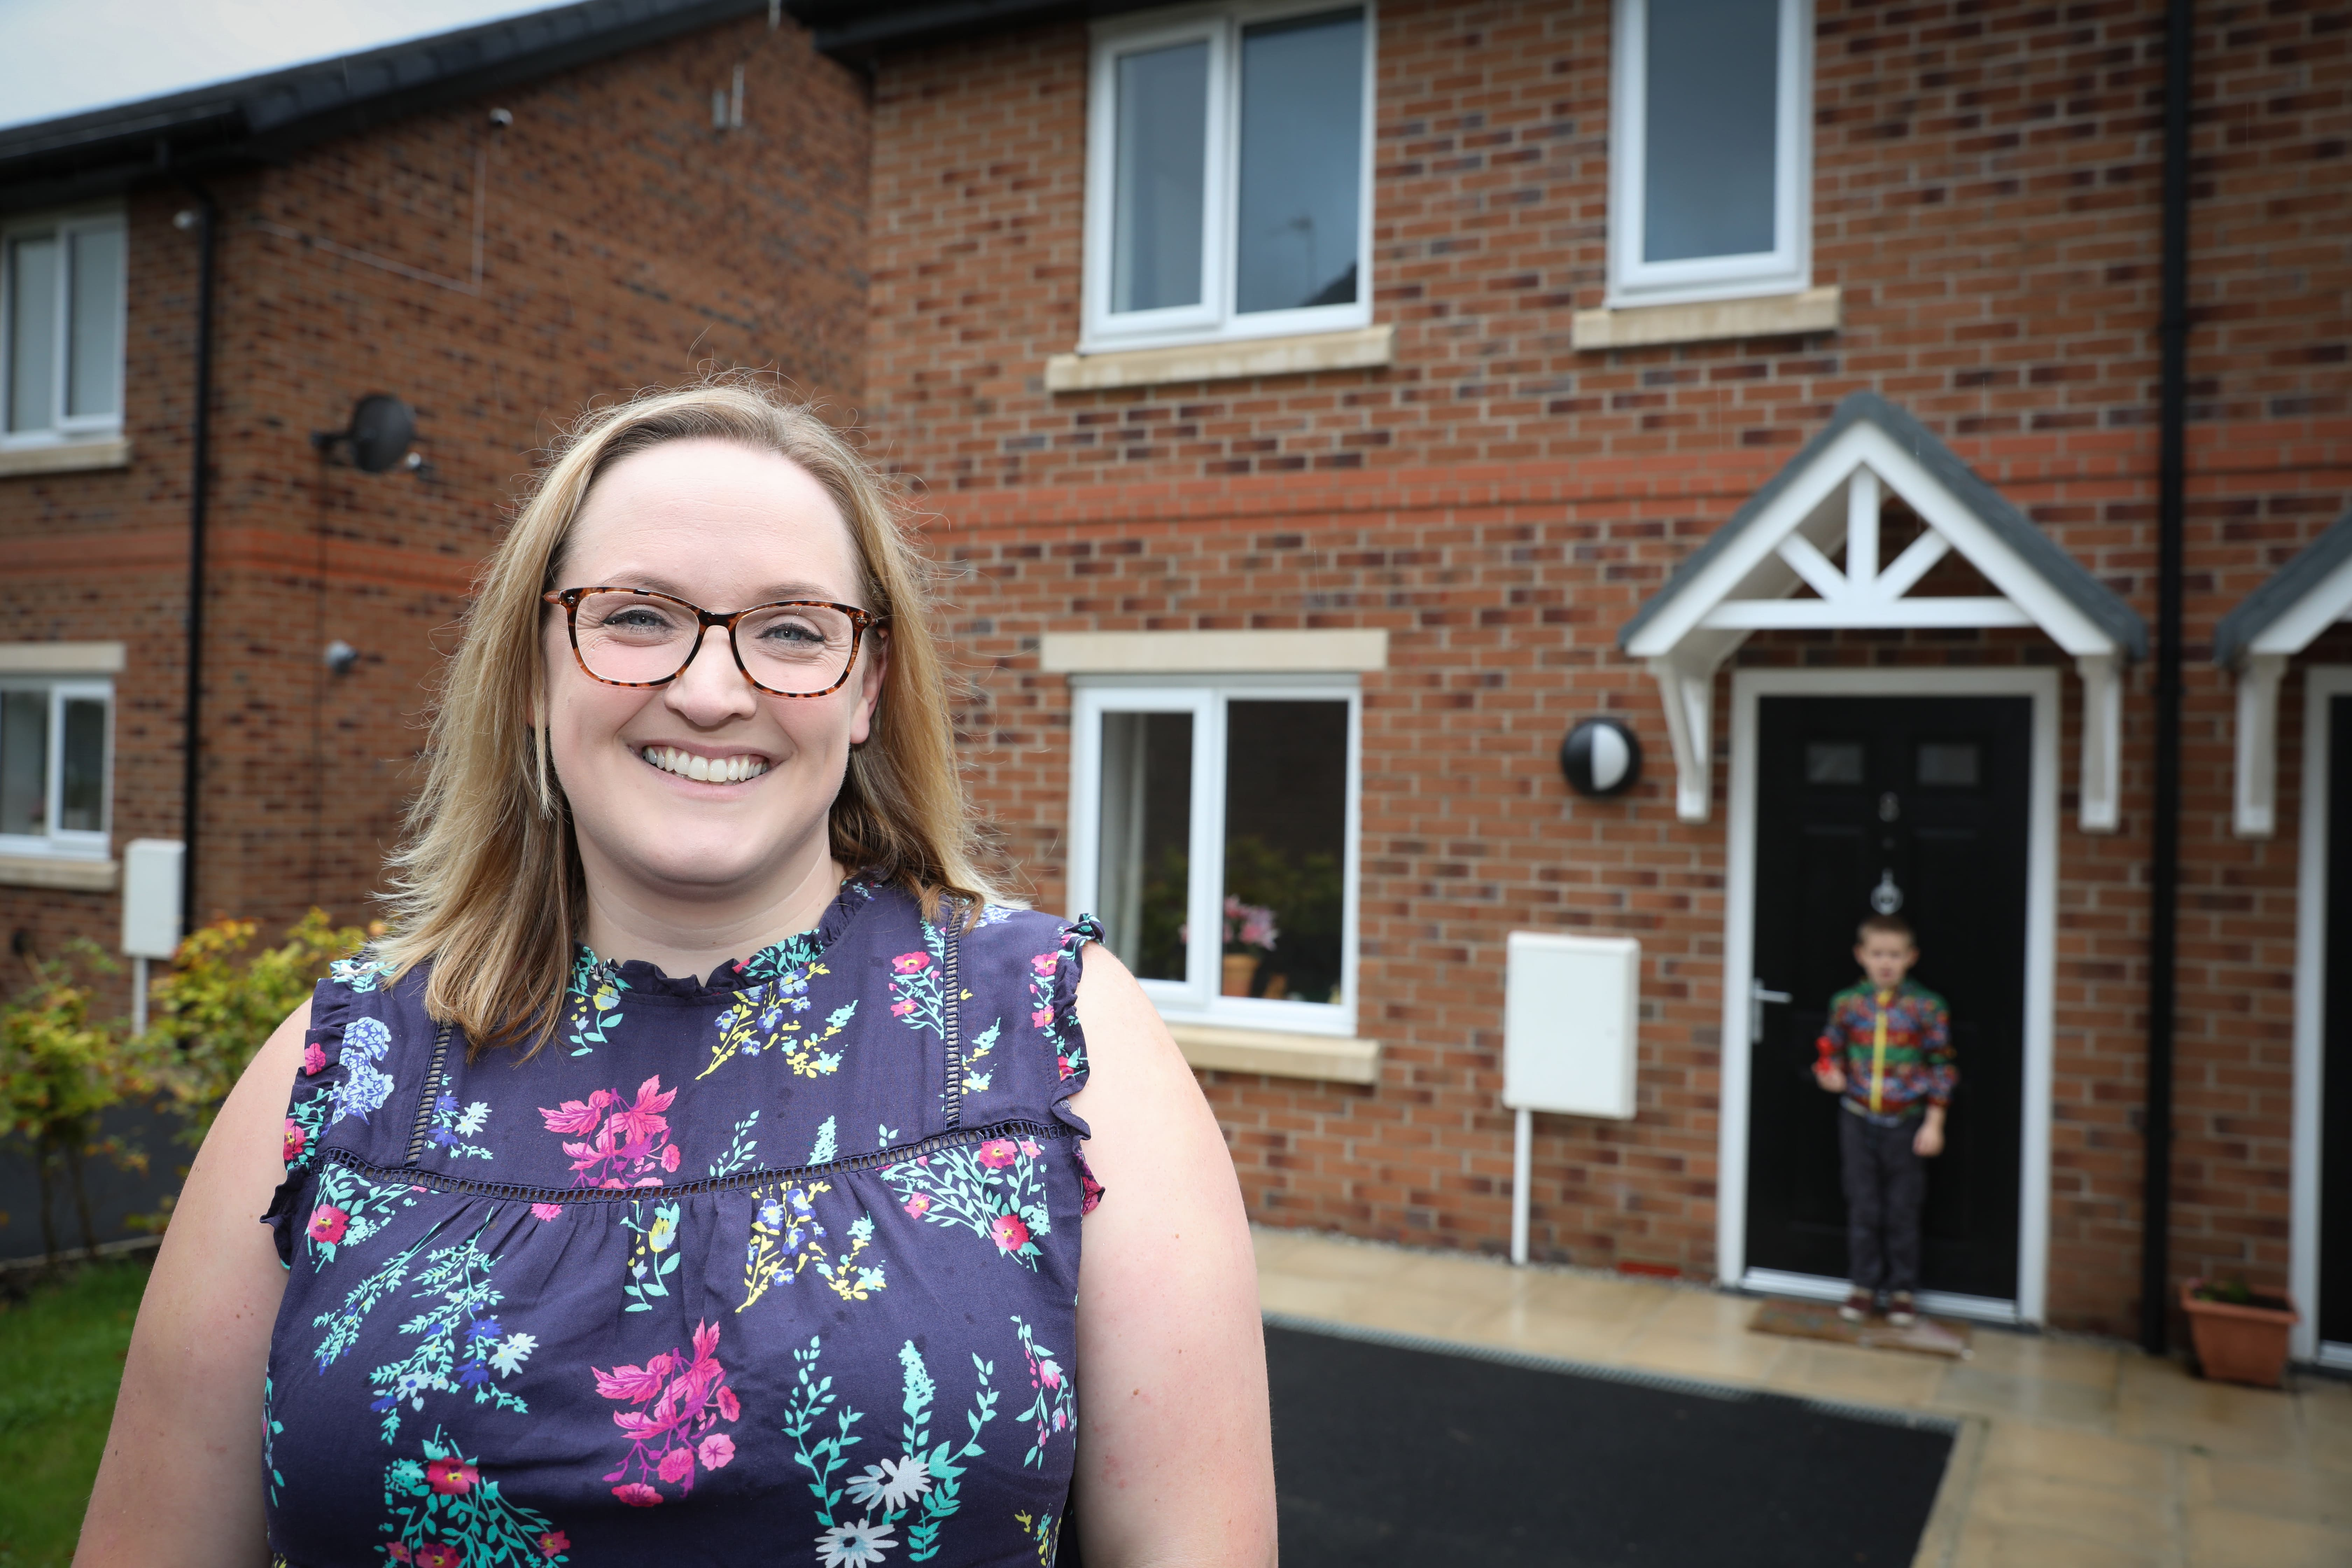 Caroline can't believe it when she parks outside of her new home in Lowton, walks up her drive and opens her front door Image